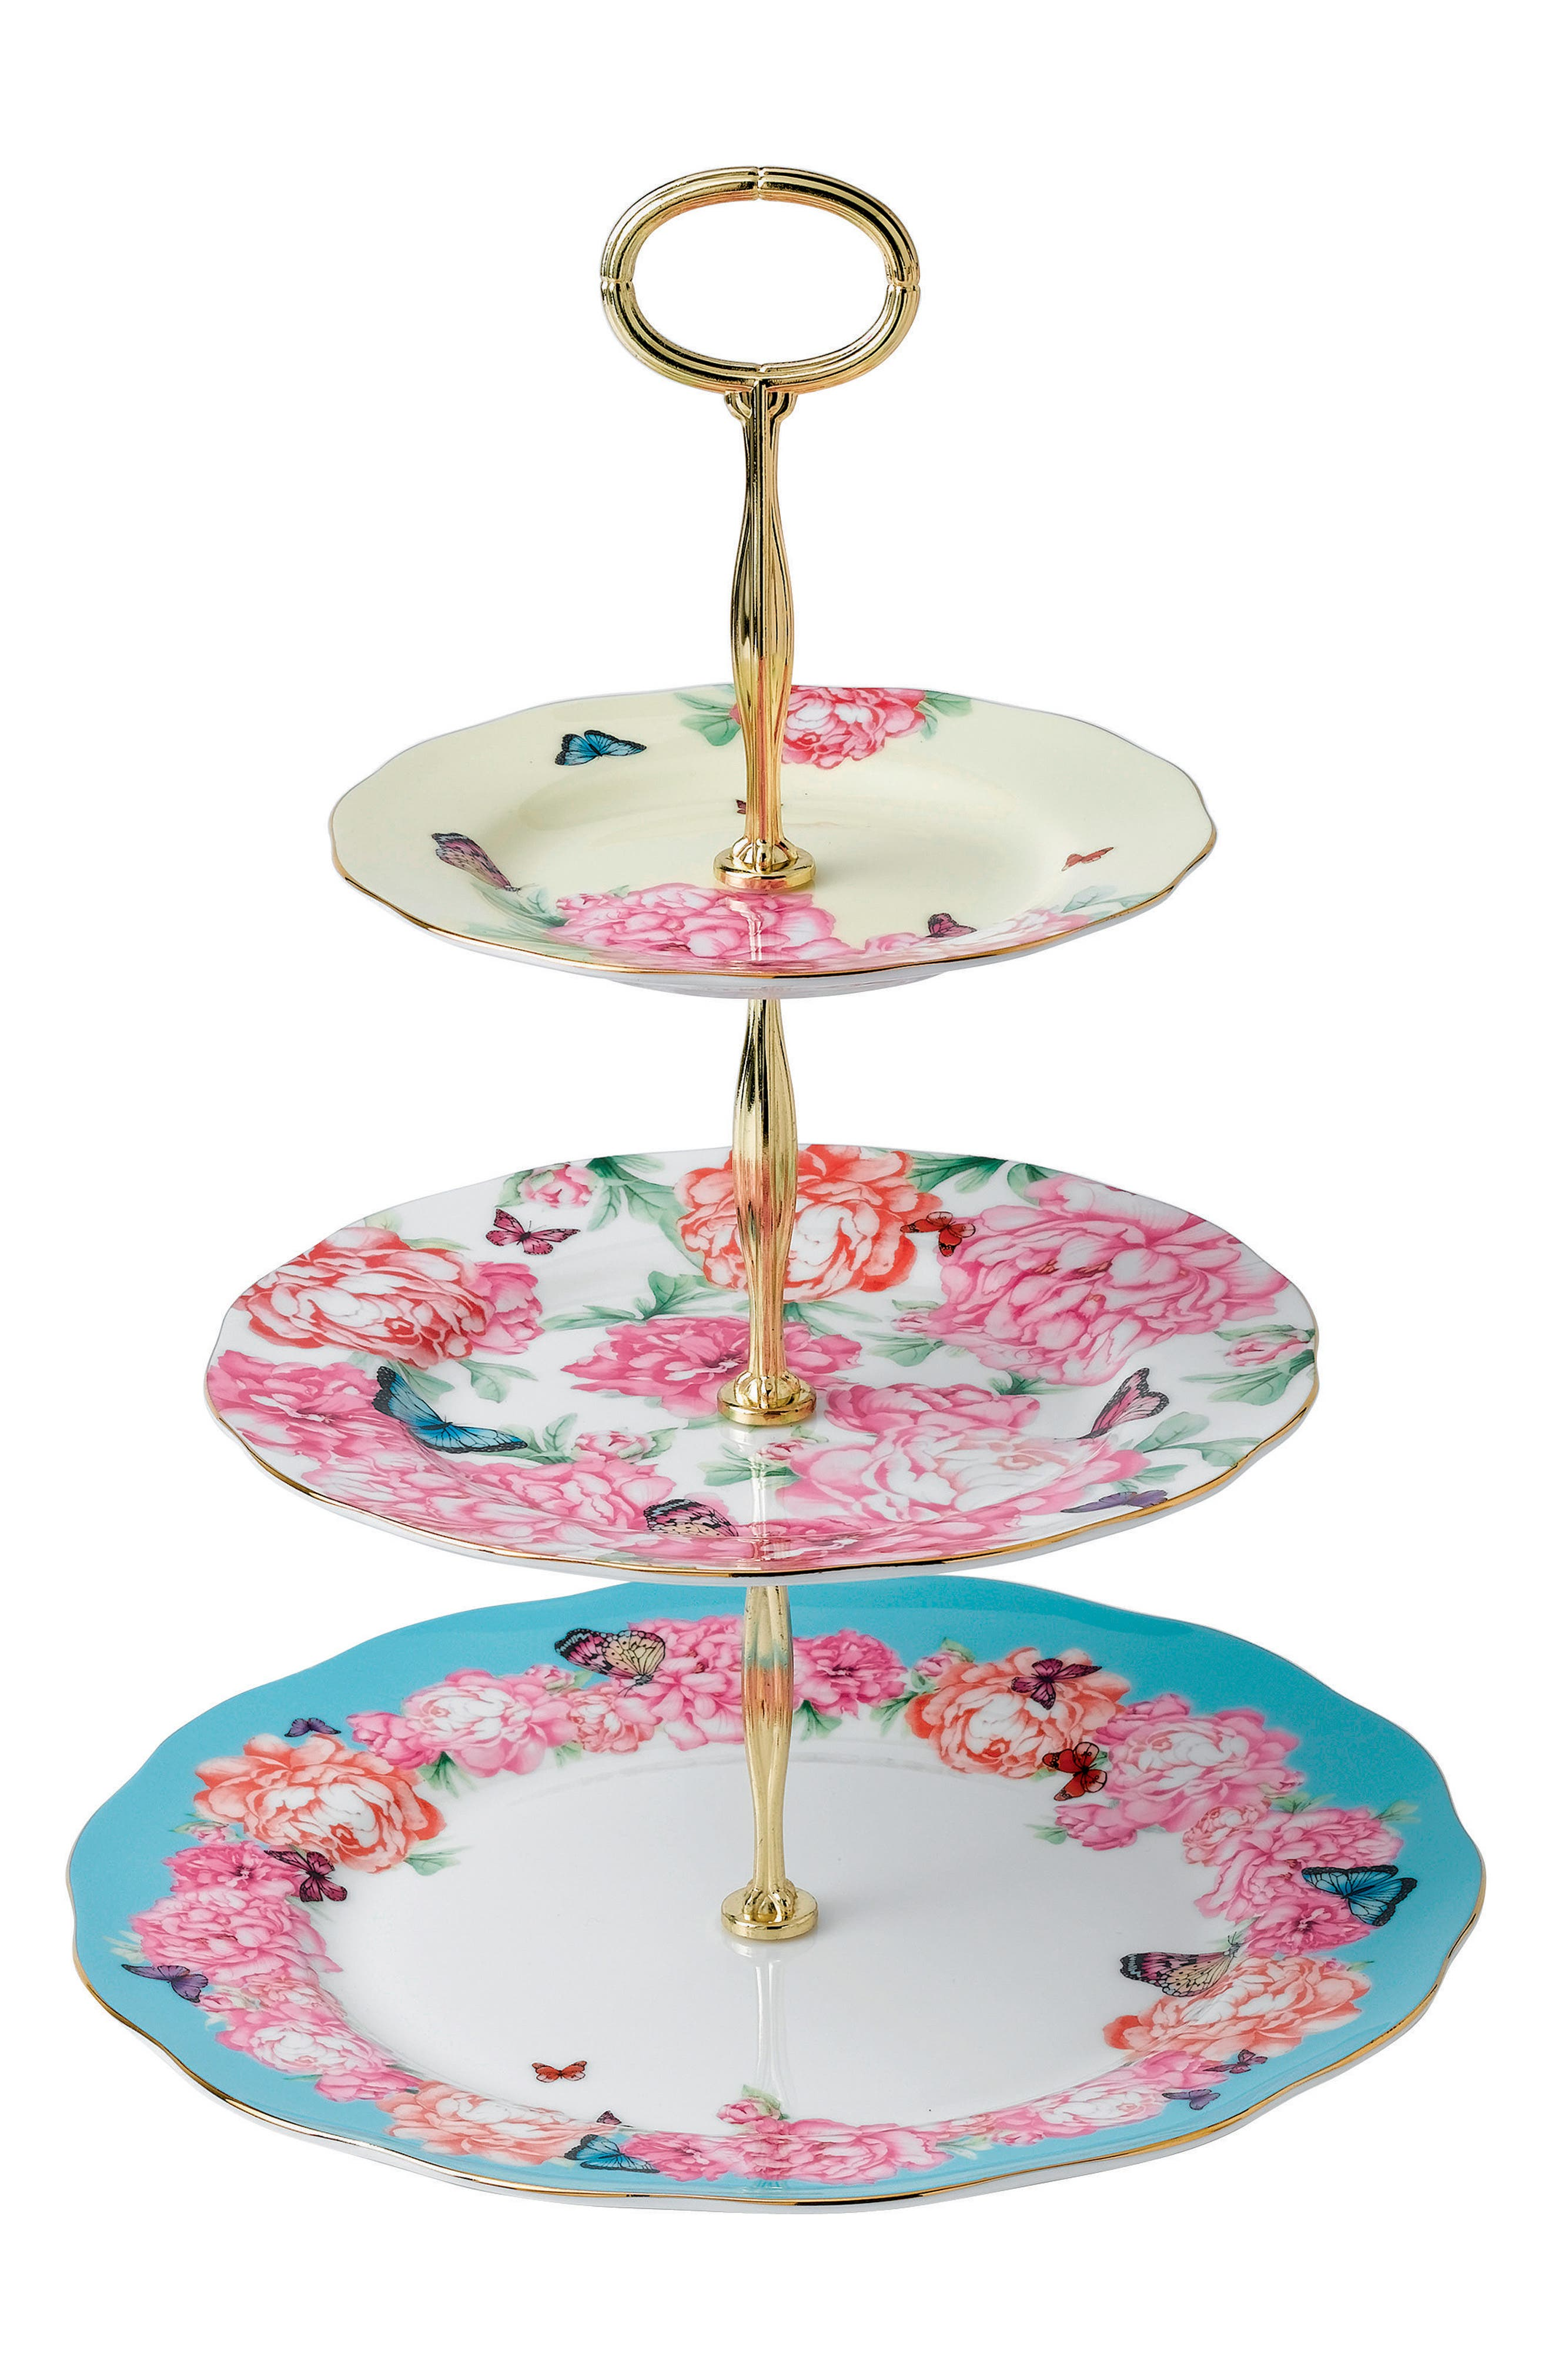 Mixed Accents 3-Tier Cake Stand,                         Main,                         color, Multi